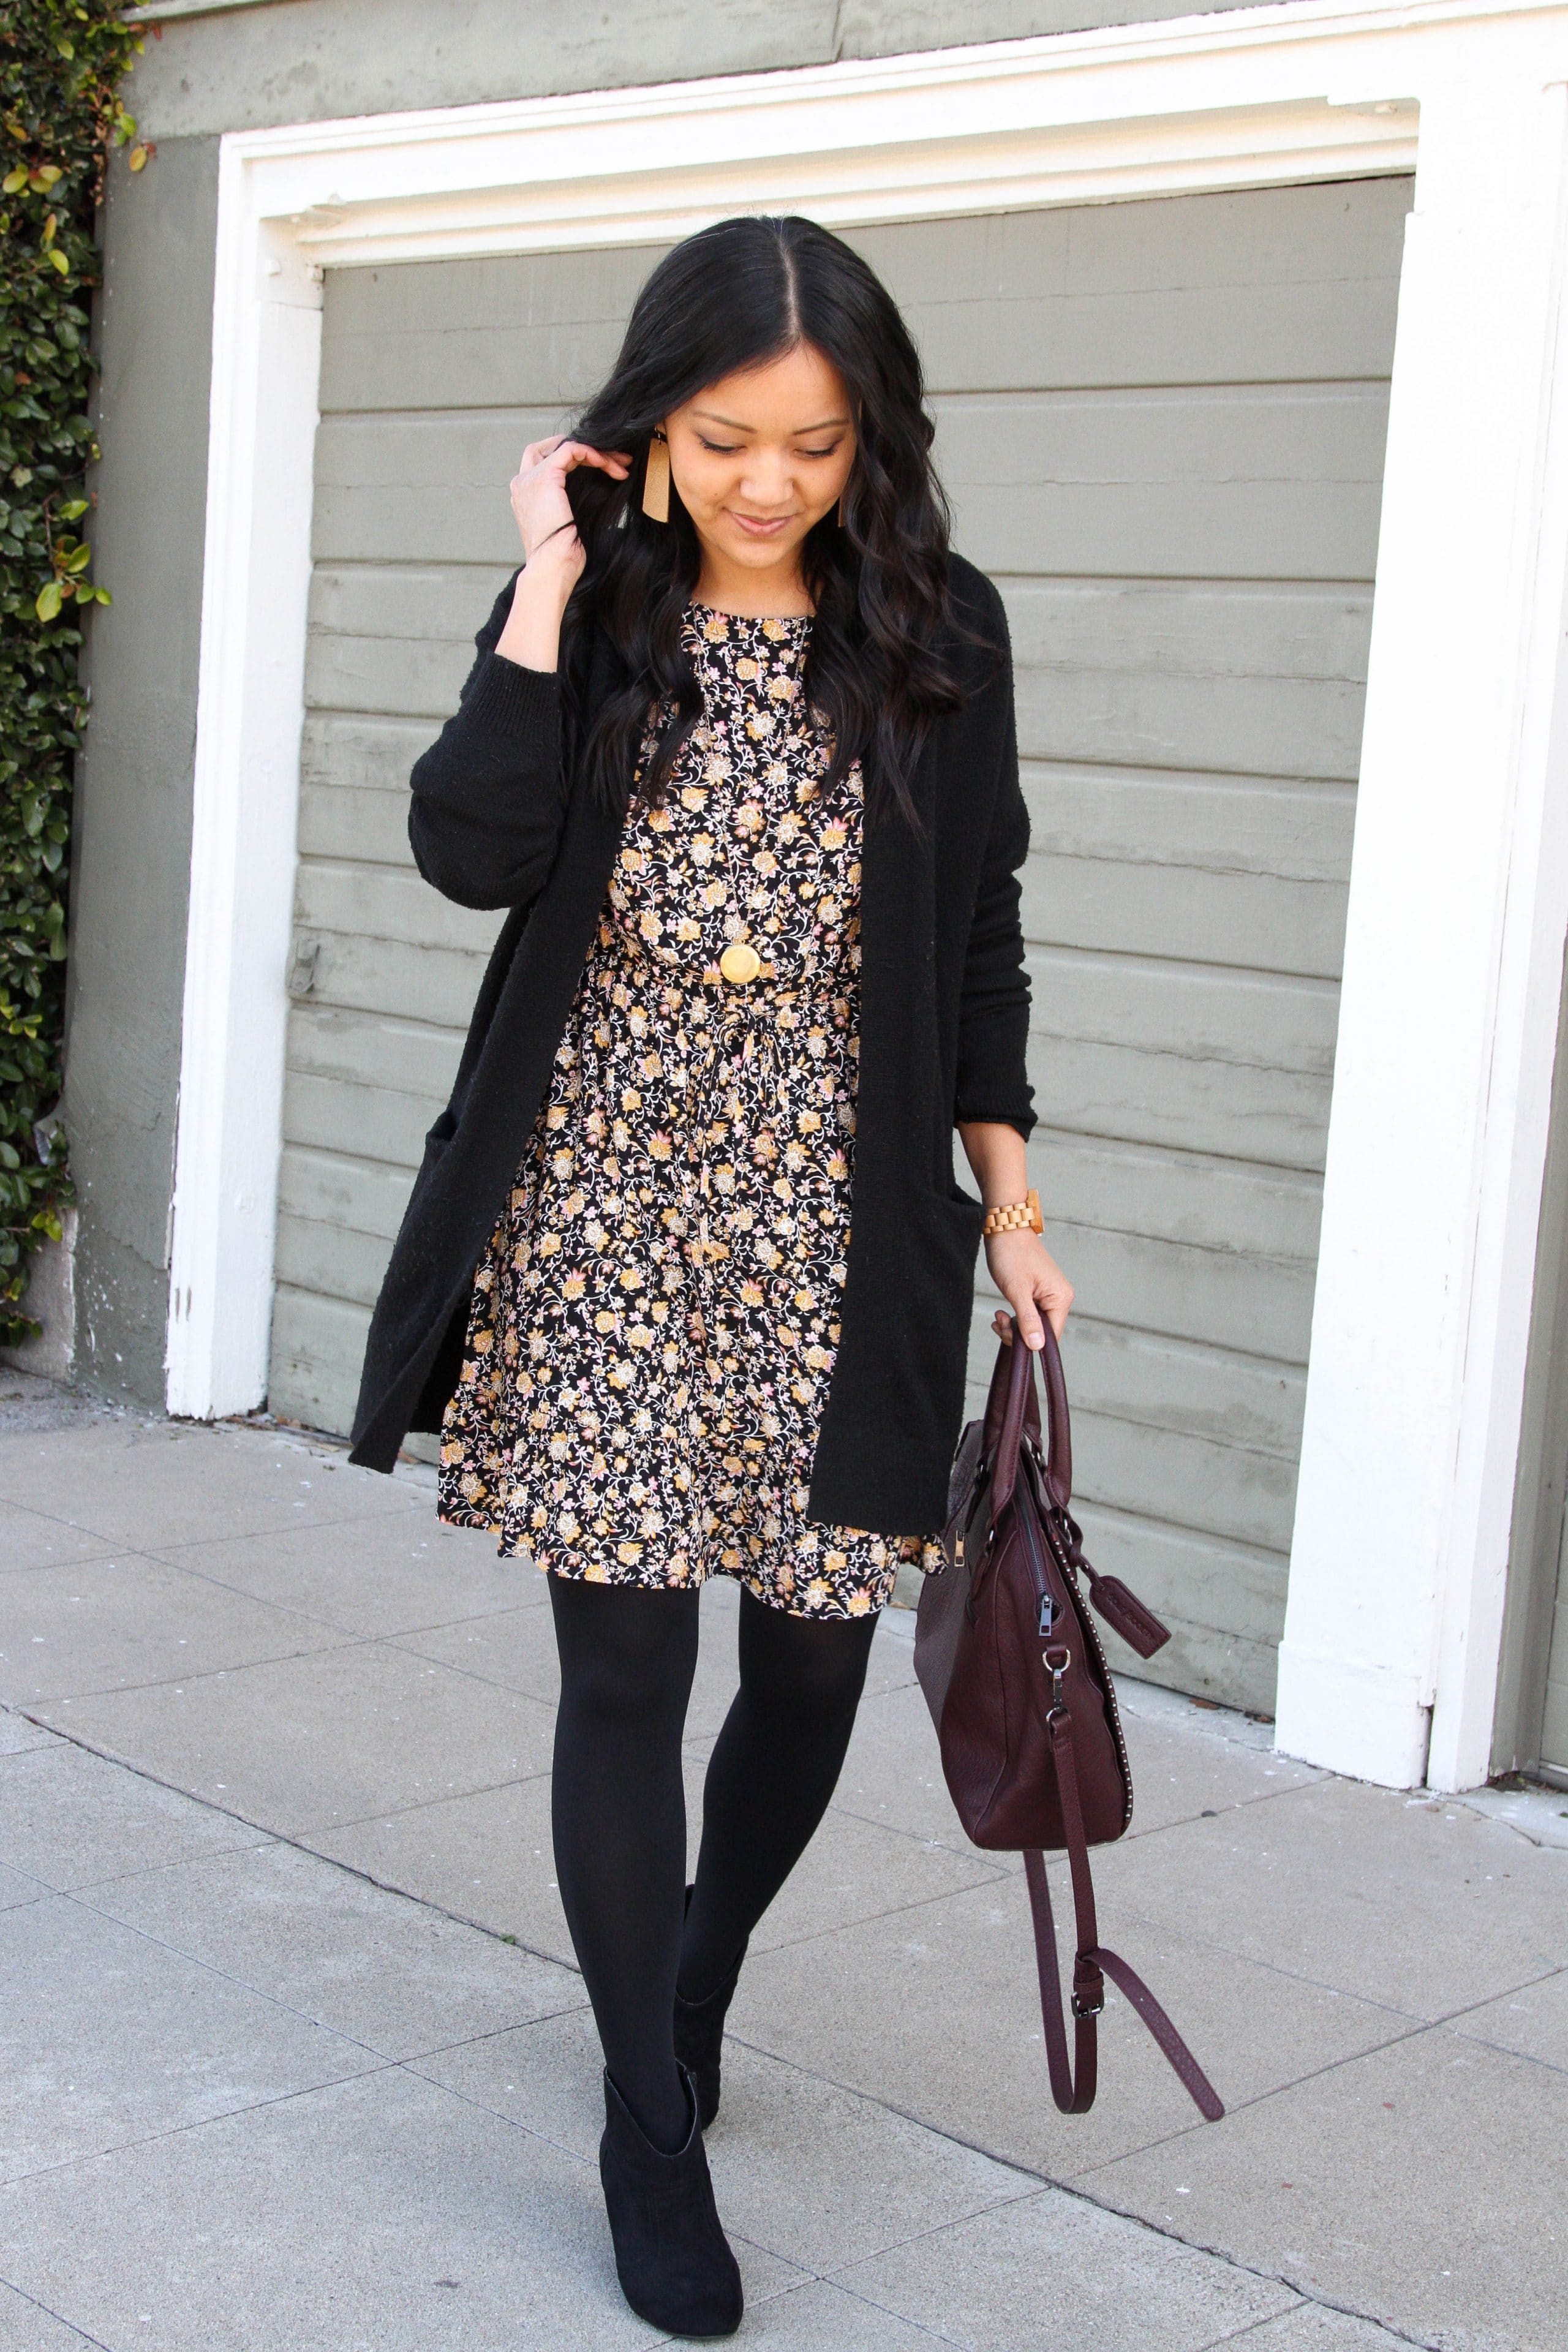 Black Floral Dress + Black Cardigan + Tights + Booties